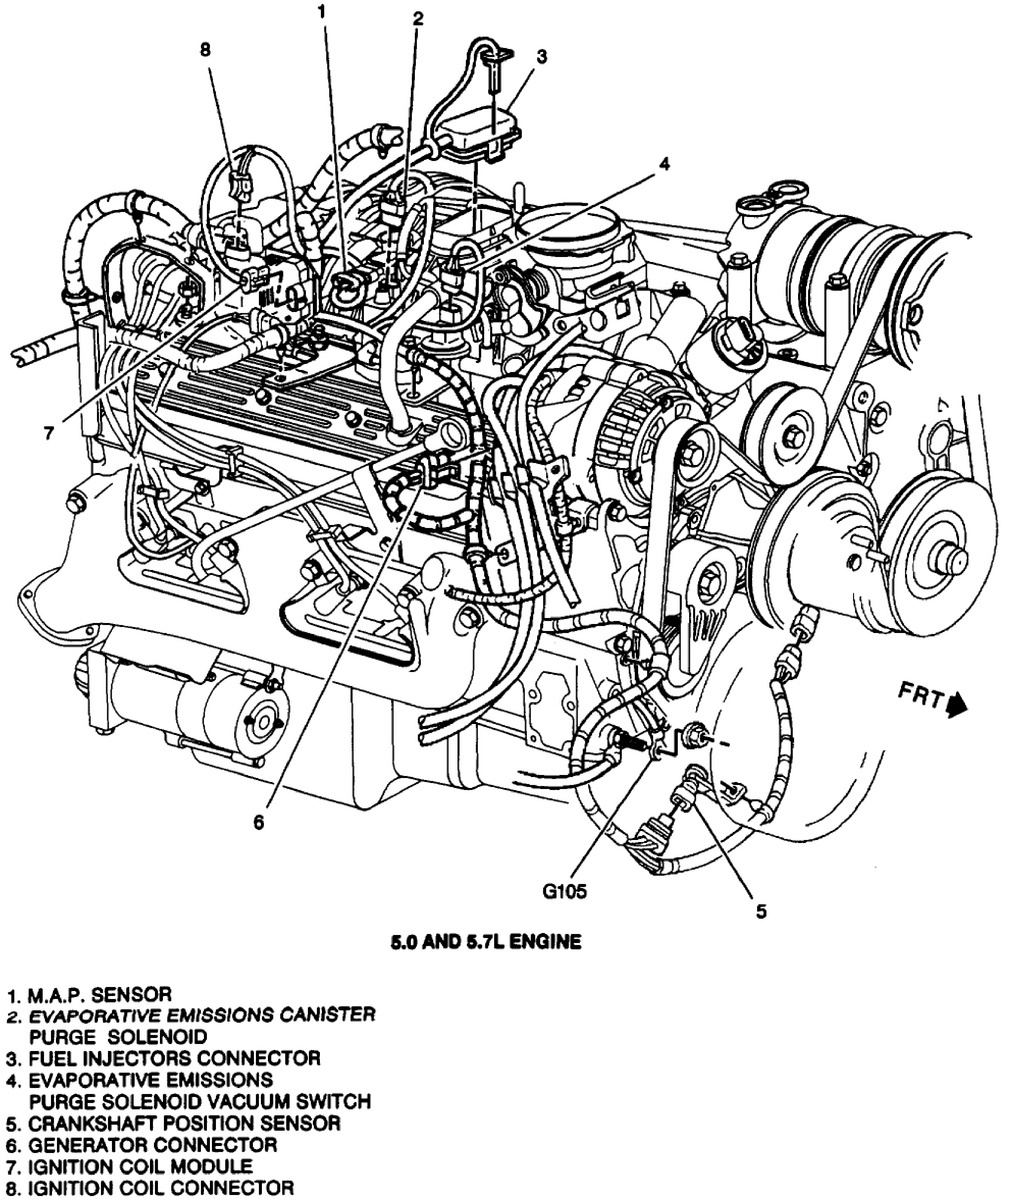 hight resolution of 2003 chevrolet silverado 1500 engine diagram wiring diagram query 1994 chevy 1500 engine diagram 1500 chevy engine diagram